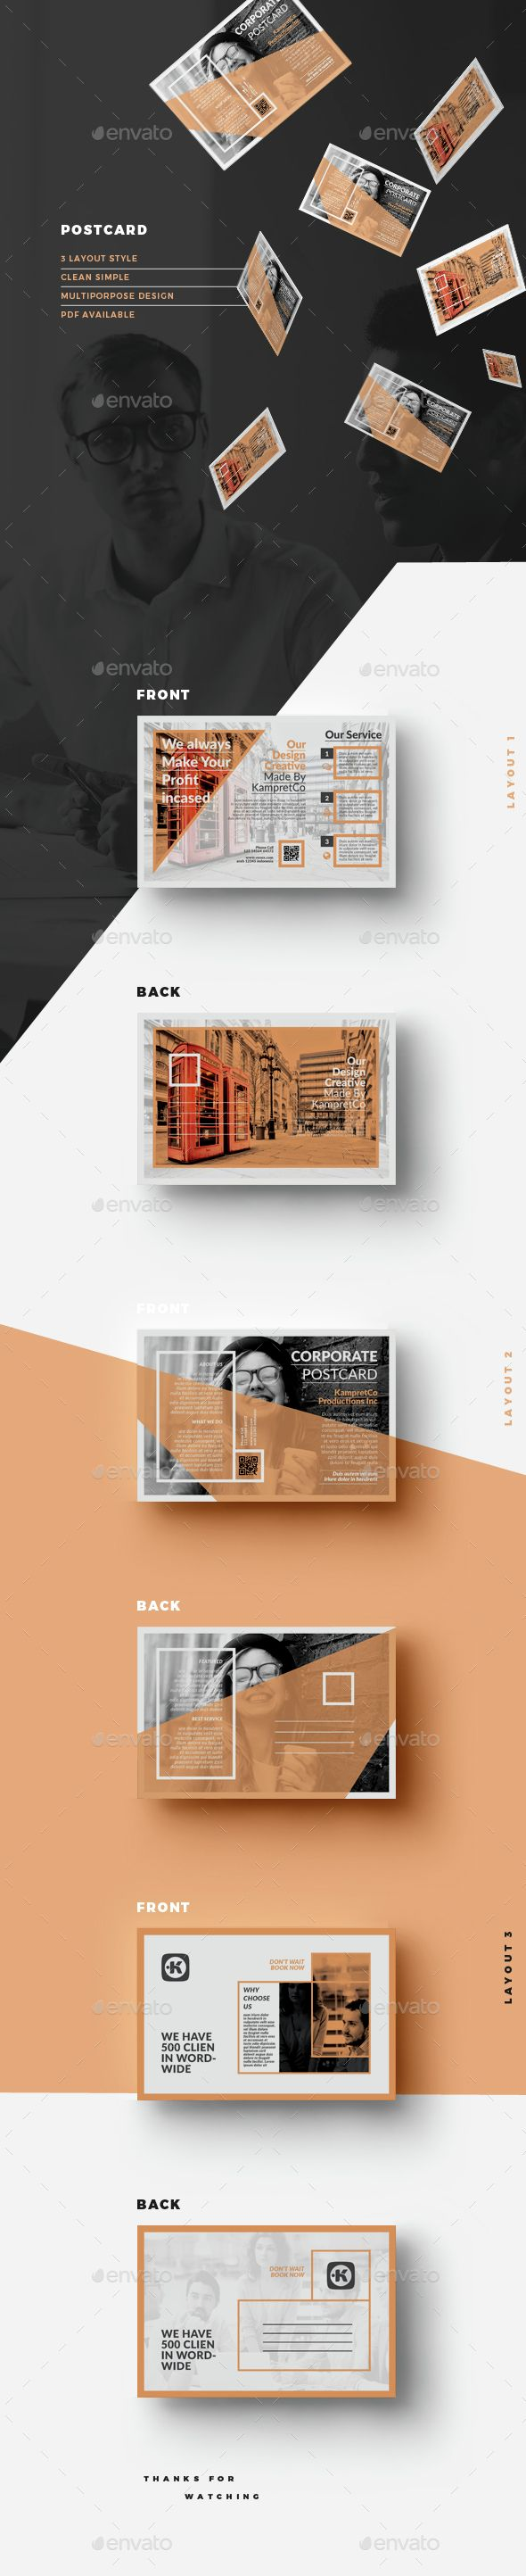 Postcard Template InDesign INDD. Download here: http://graphicriver ...